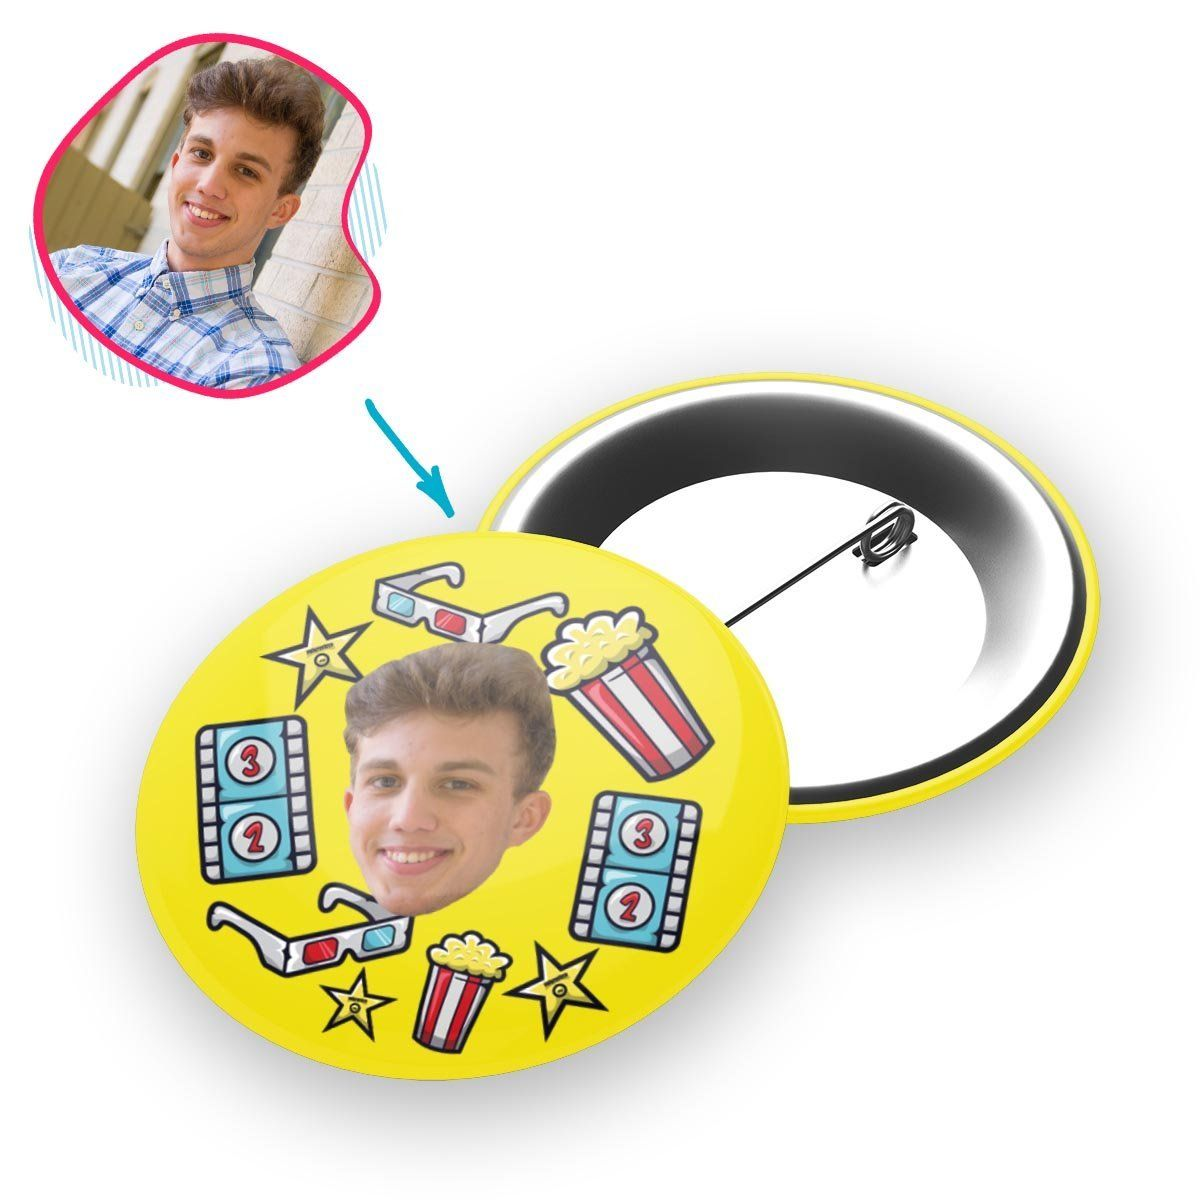 yellow Movie pin personalized with photo of face printed on it